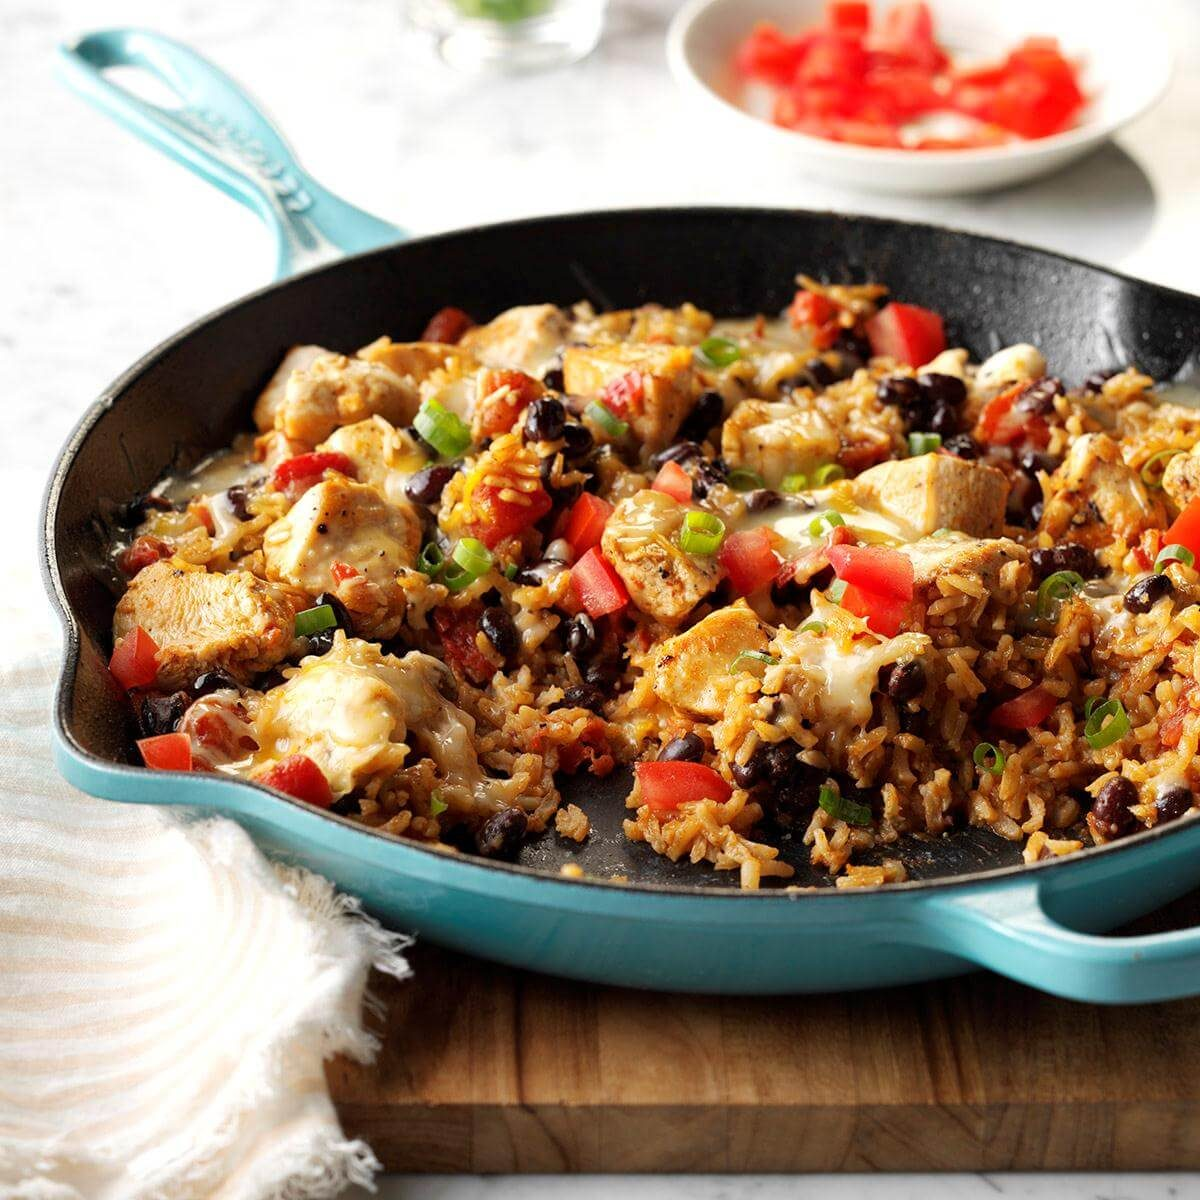 21 Southwestern Skillet Recipes to Spice Up Your Dinner Routine